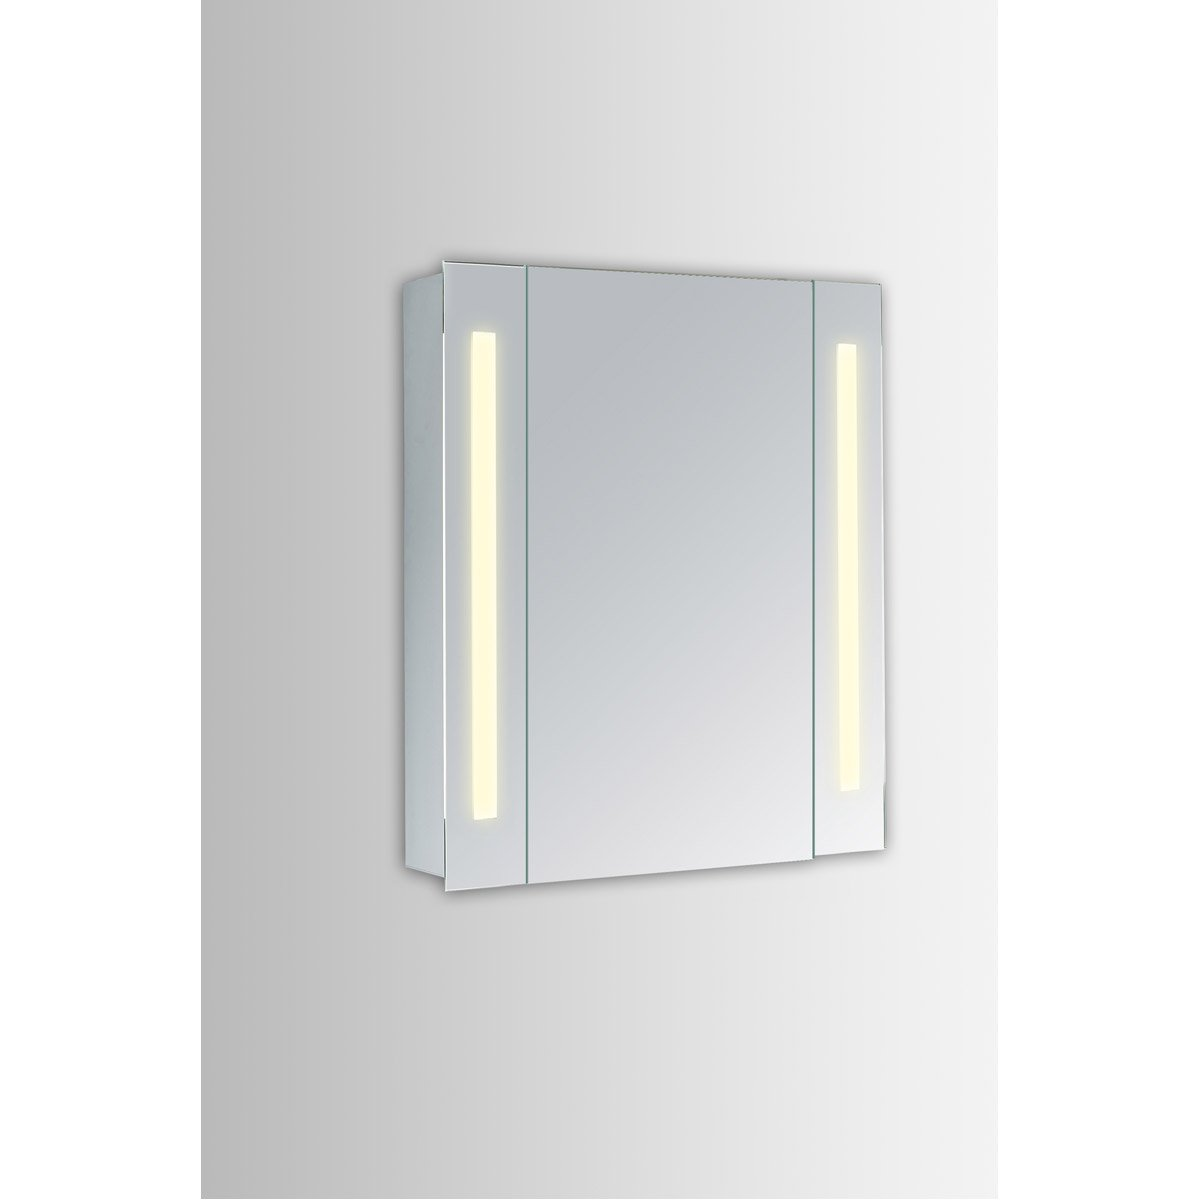 Elixir 30 X 23.5 Led Mirror Cabinet - Silver Finish (Mre8001) Led Cabinet